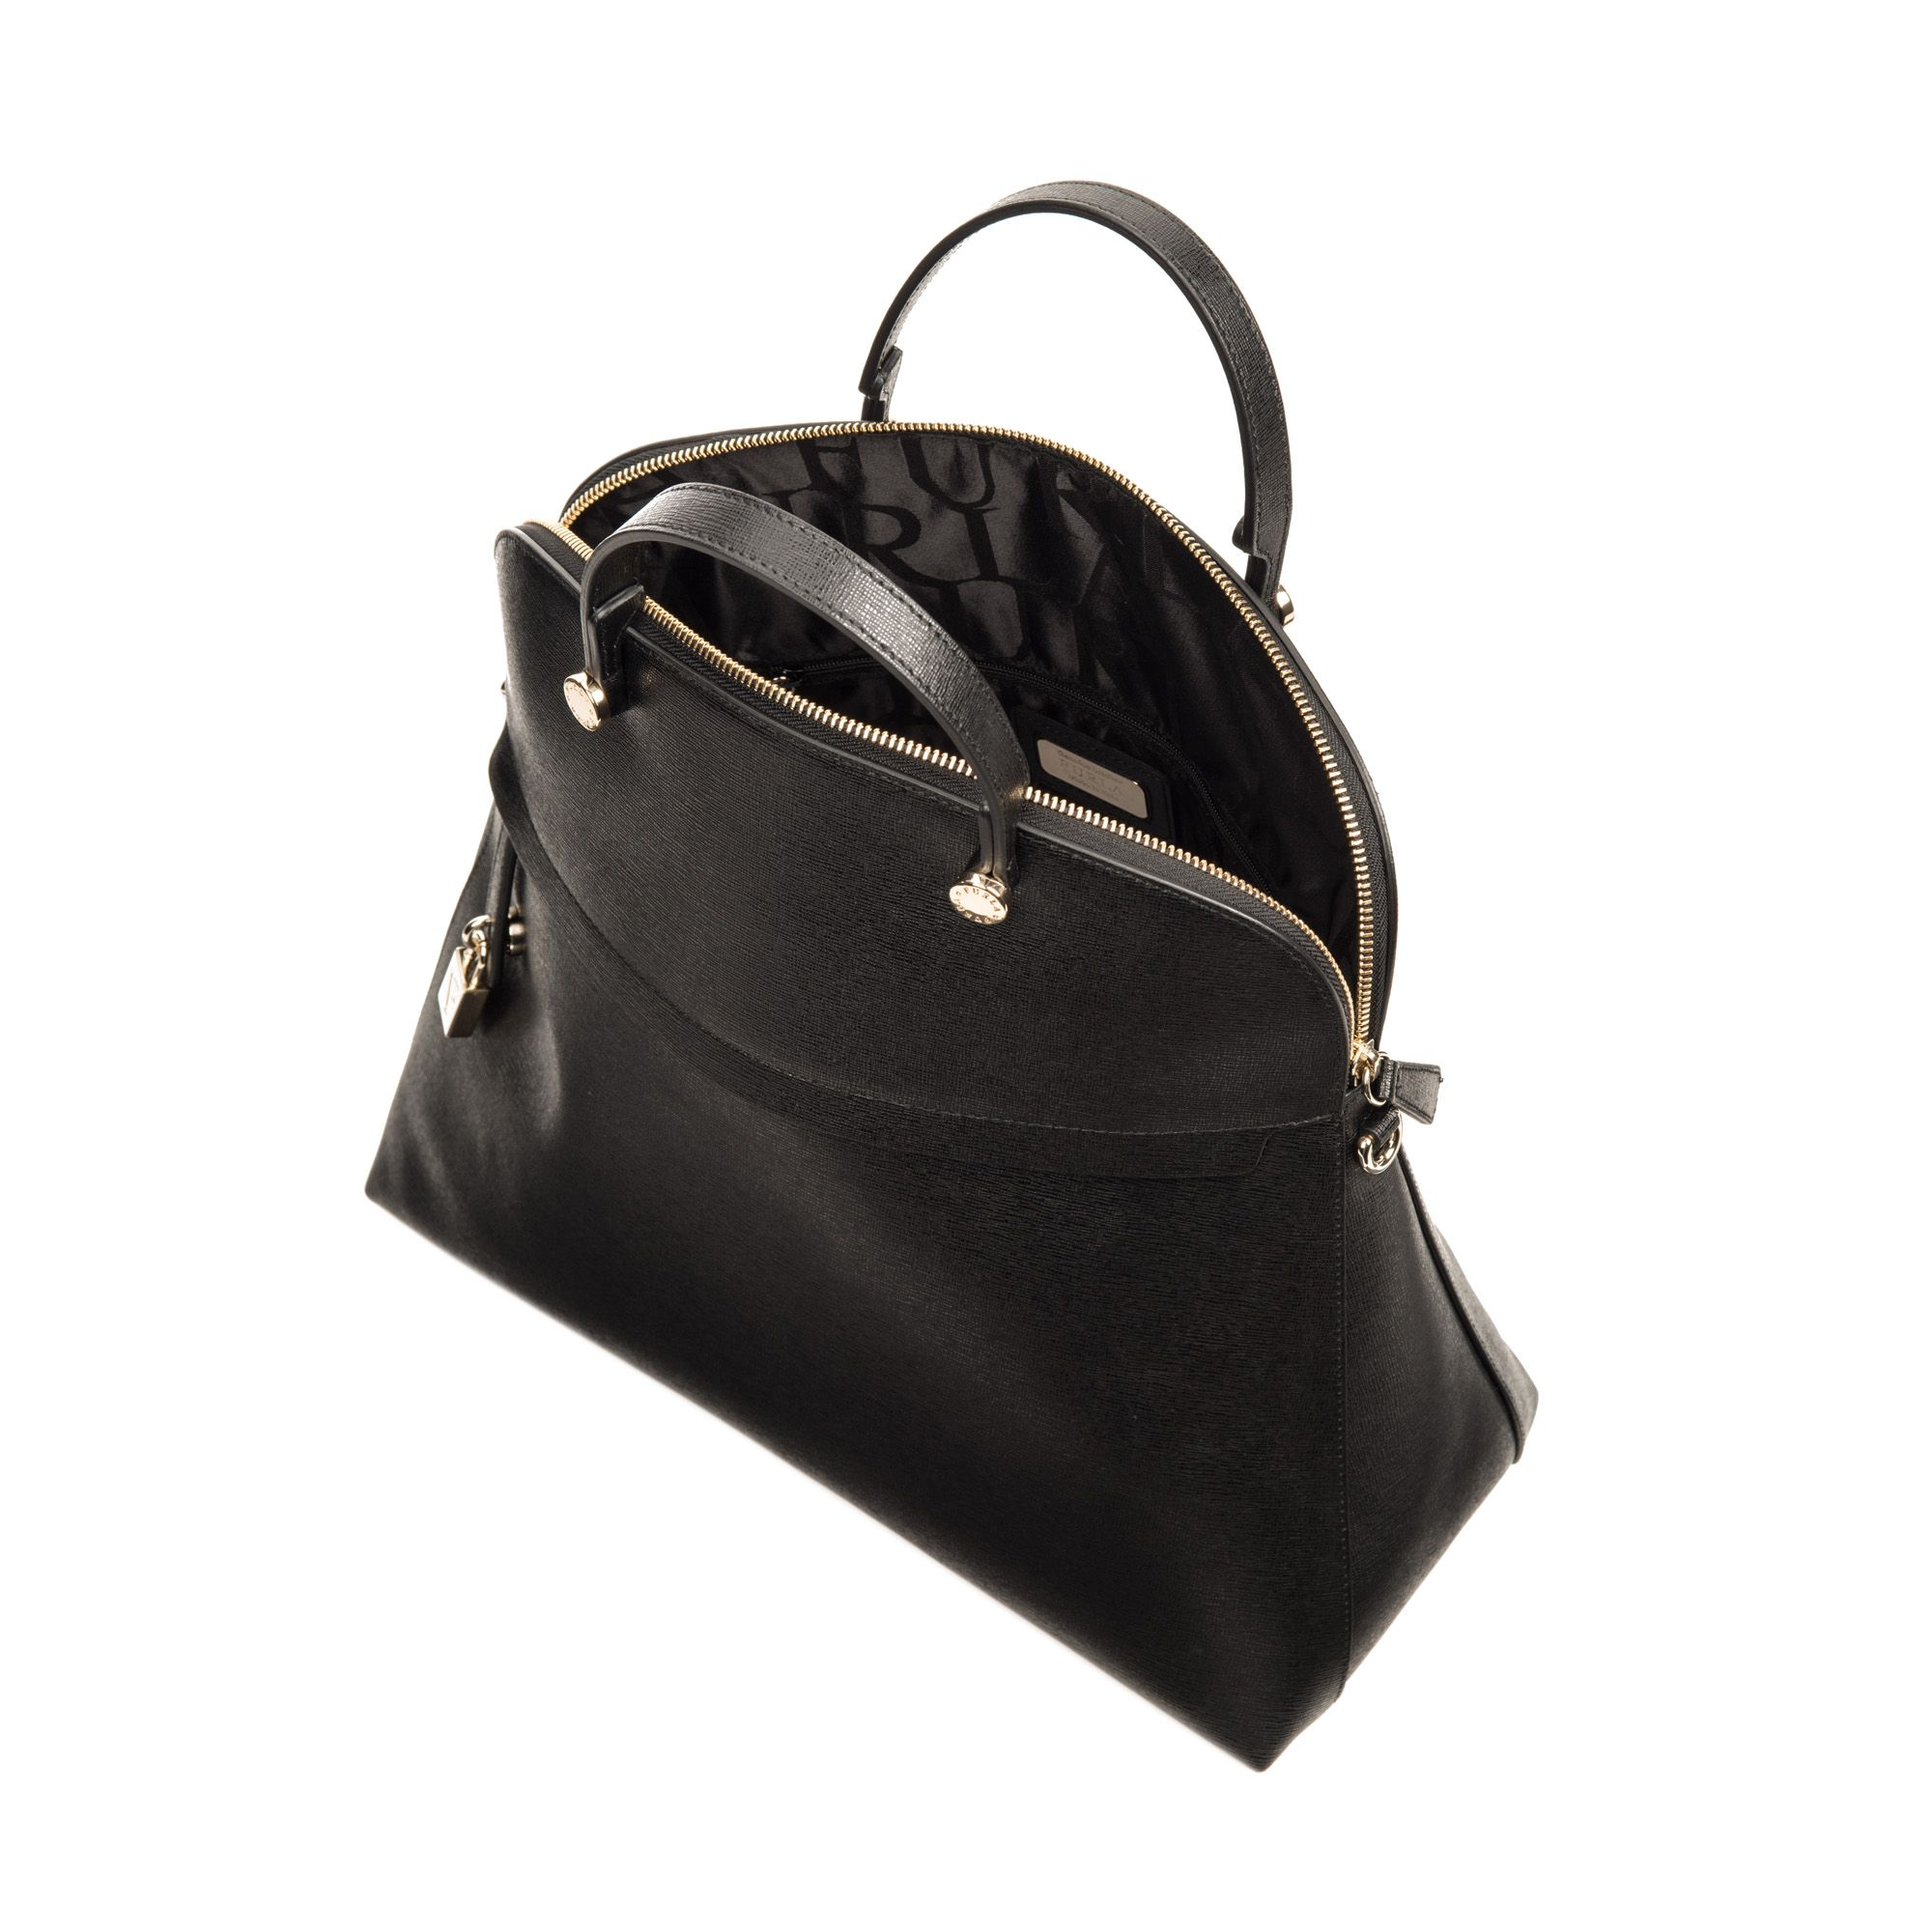 96aceaccf4 Women's Black Piper Leather Tote | bag love | Leather, Furla, Black